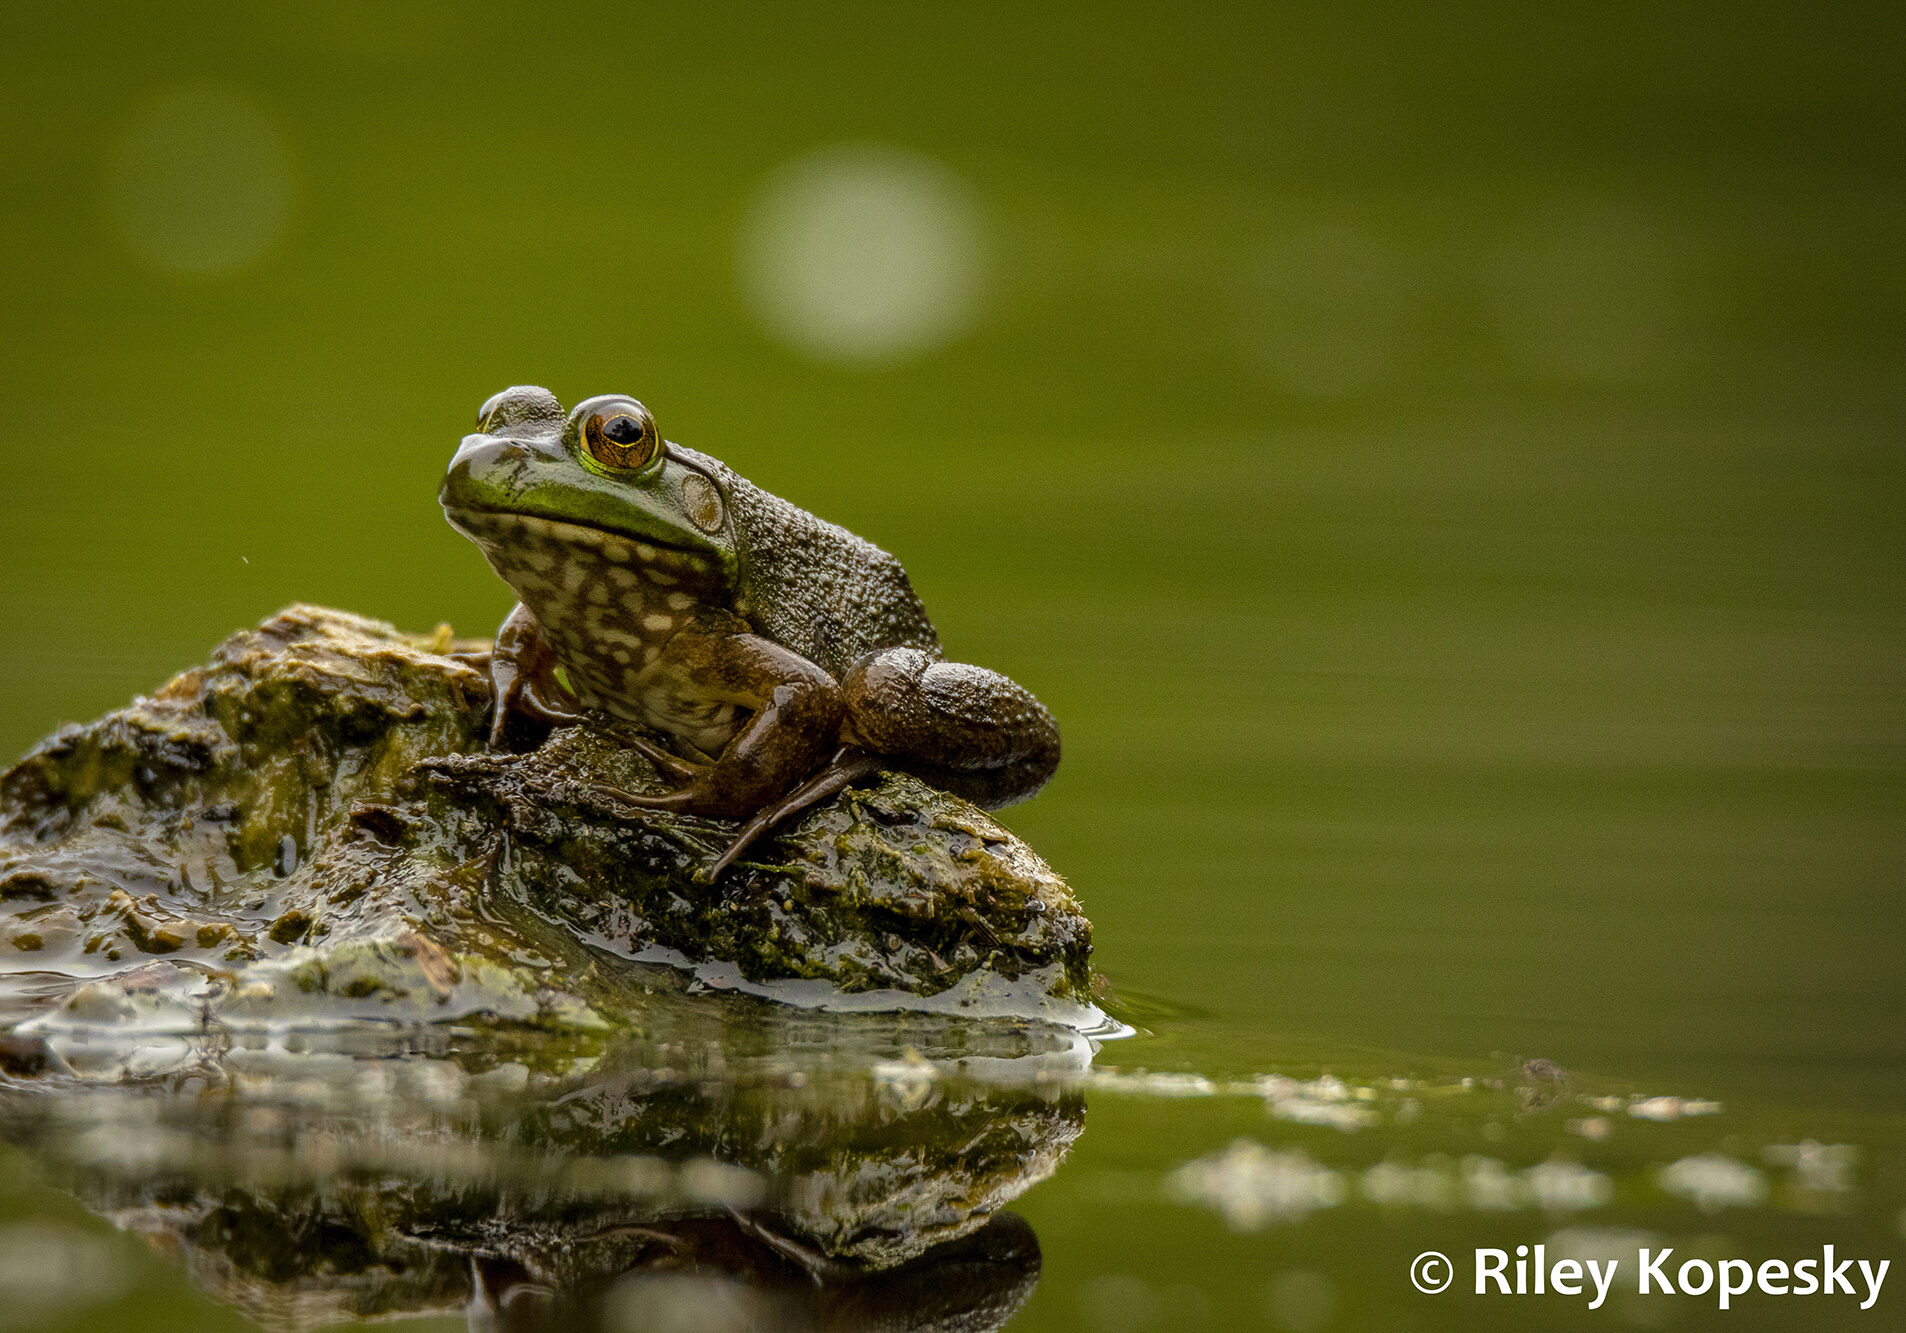 A frog sits on a rock poking out from the water